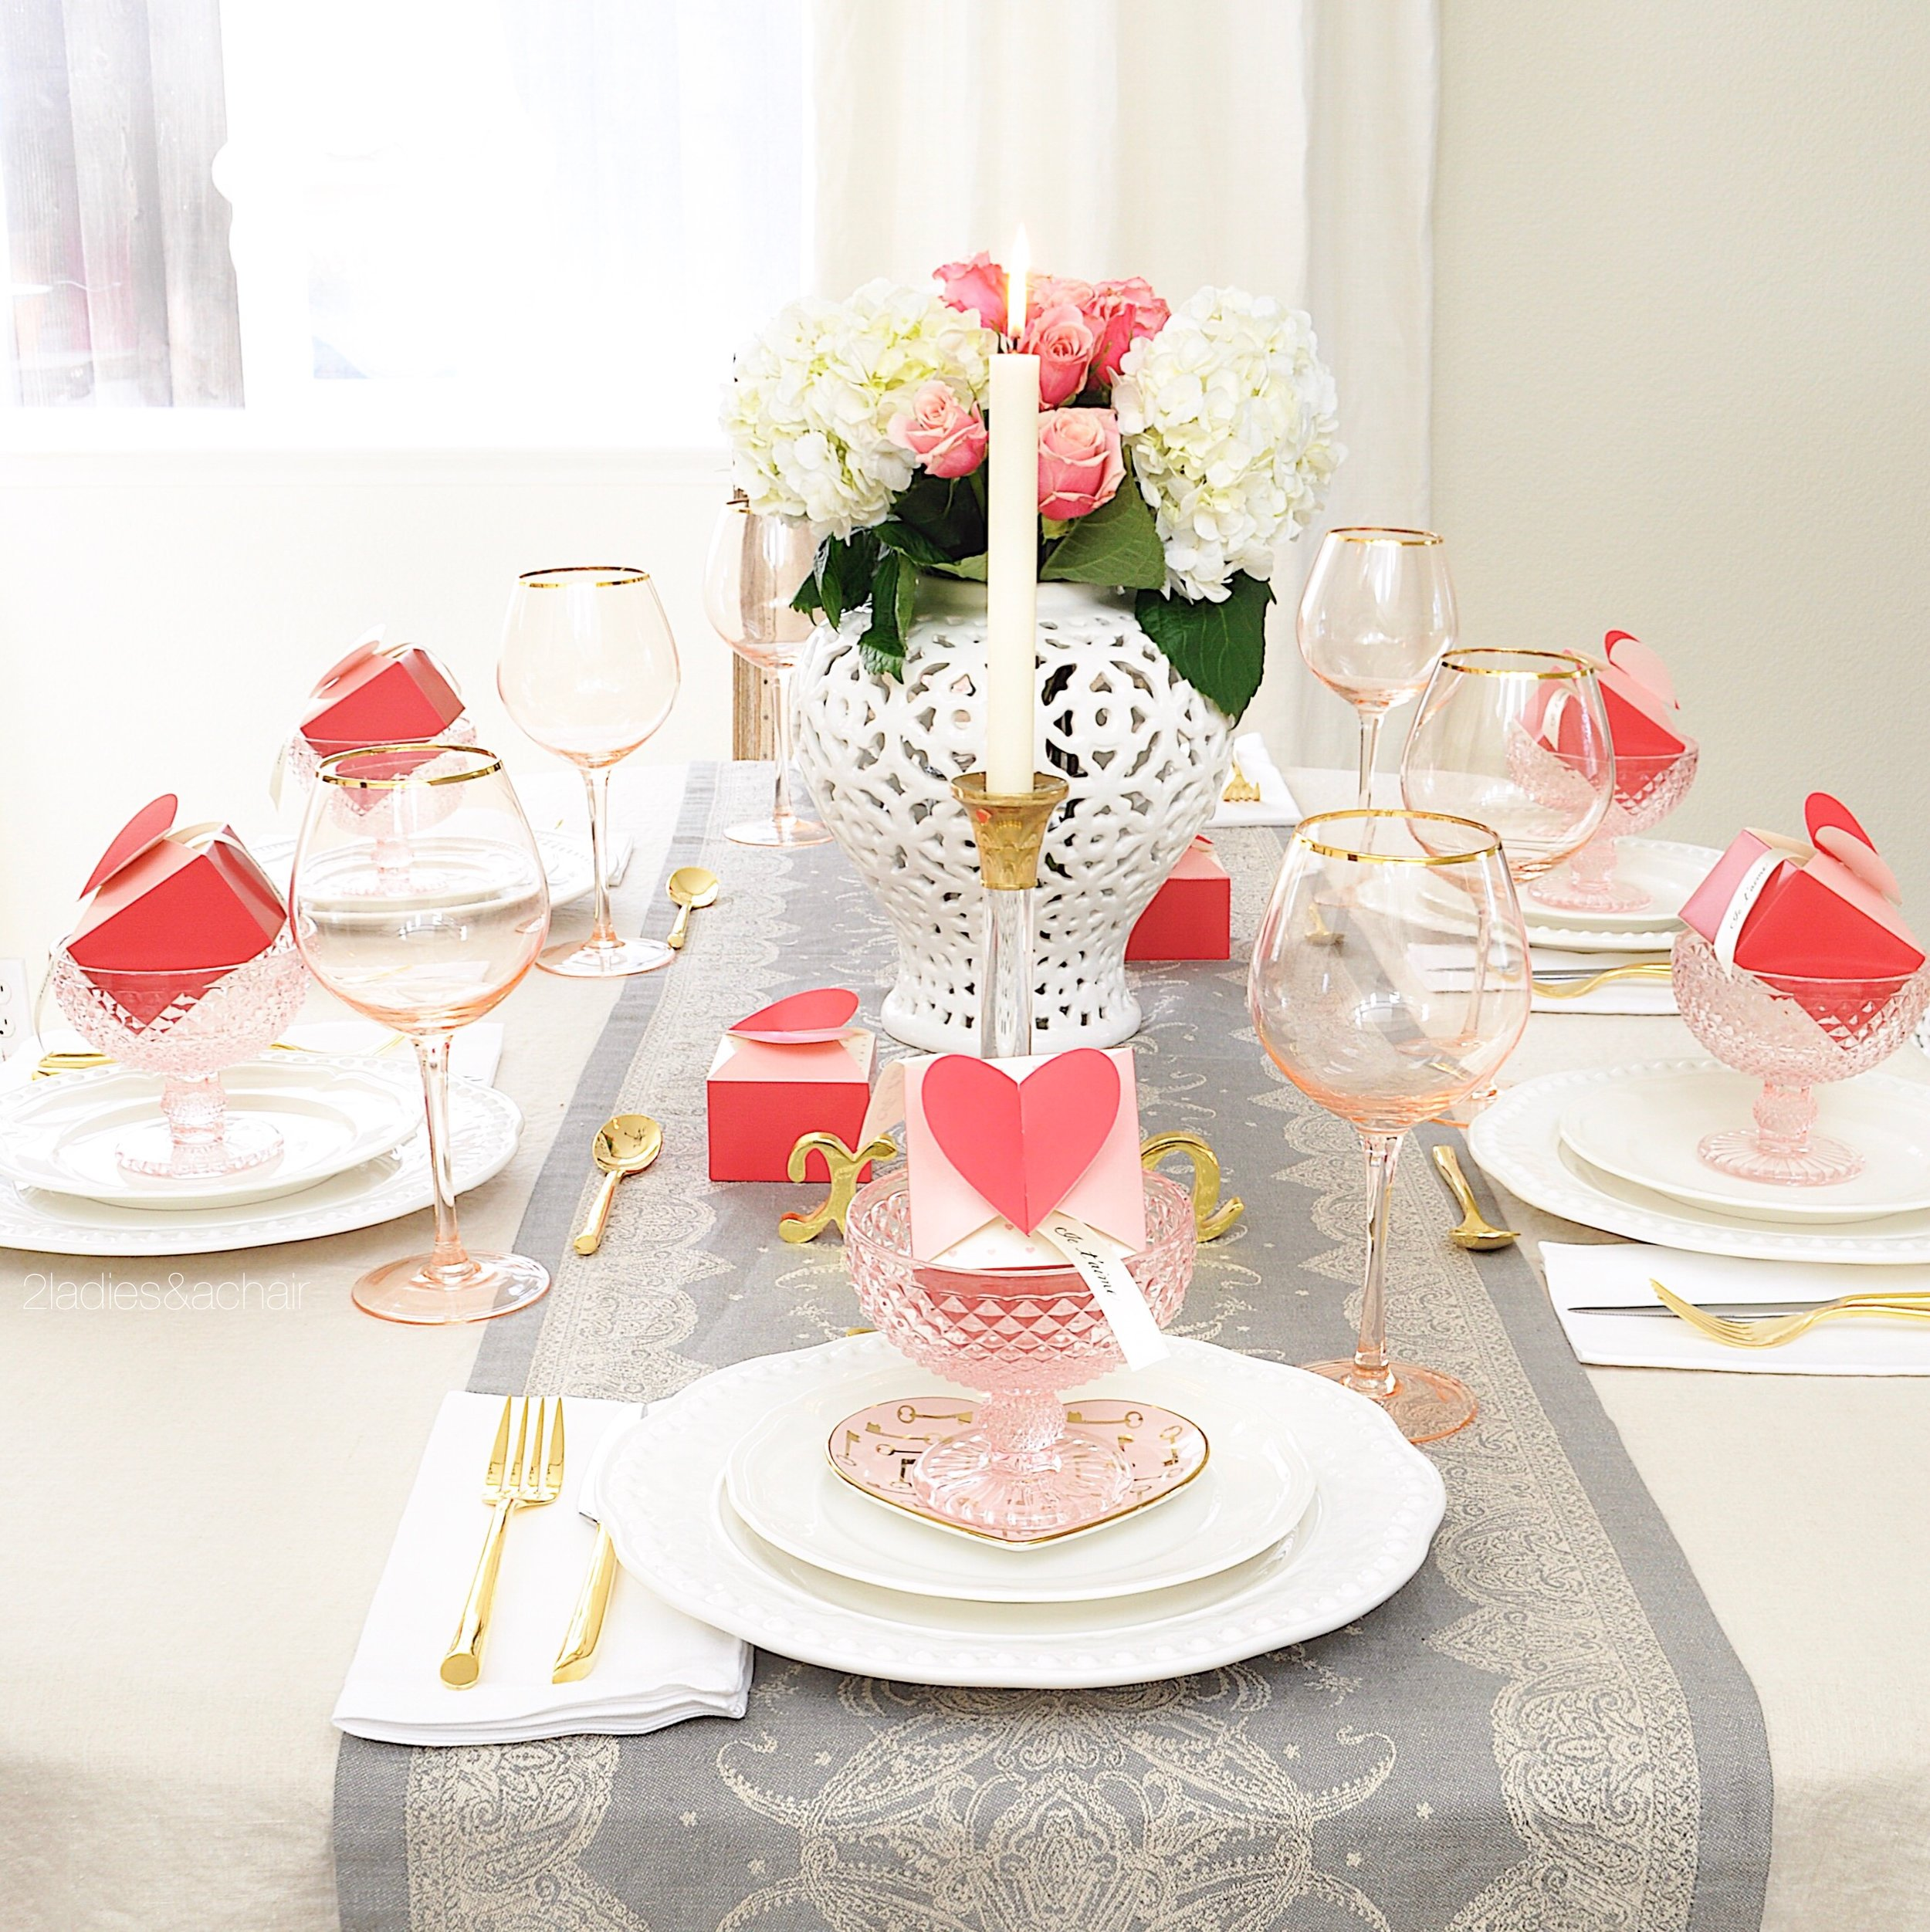 valentines day table decor IMG_0332.JPG